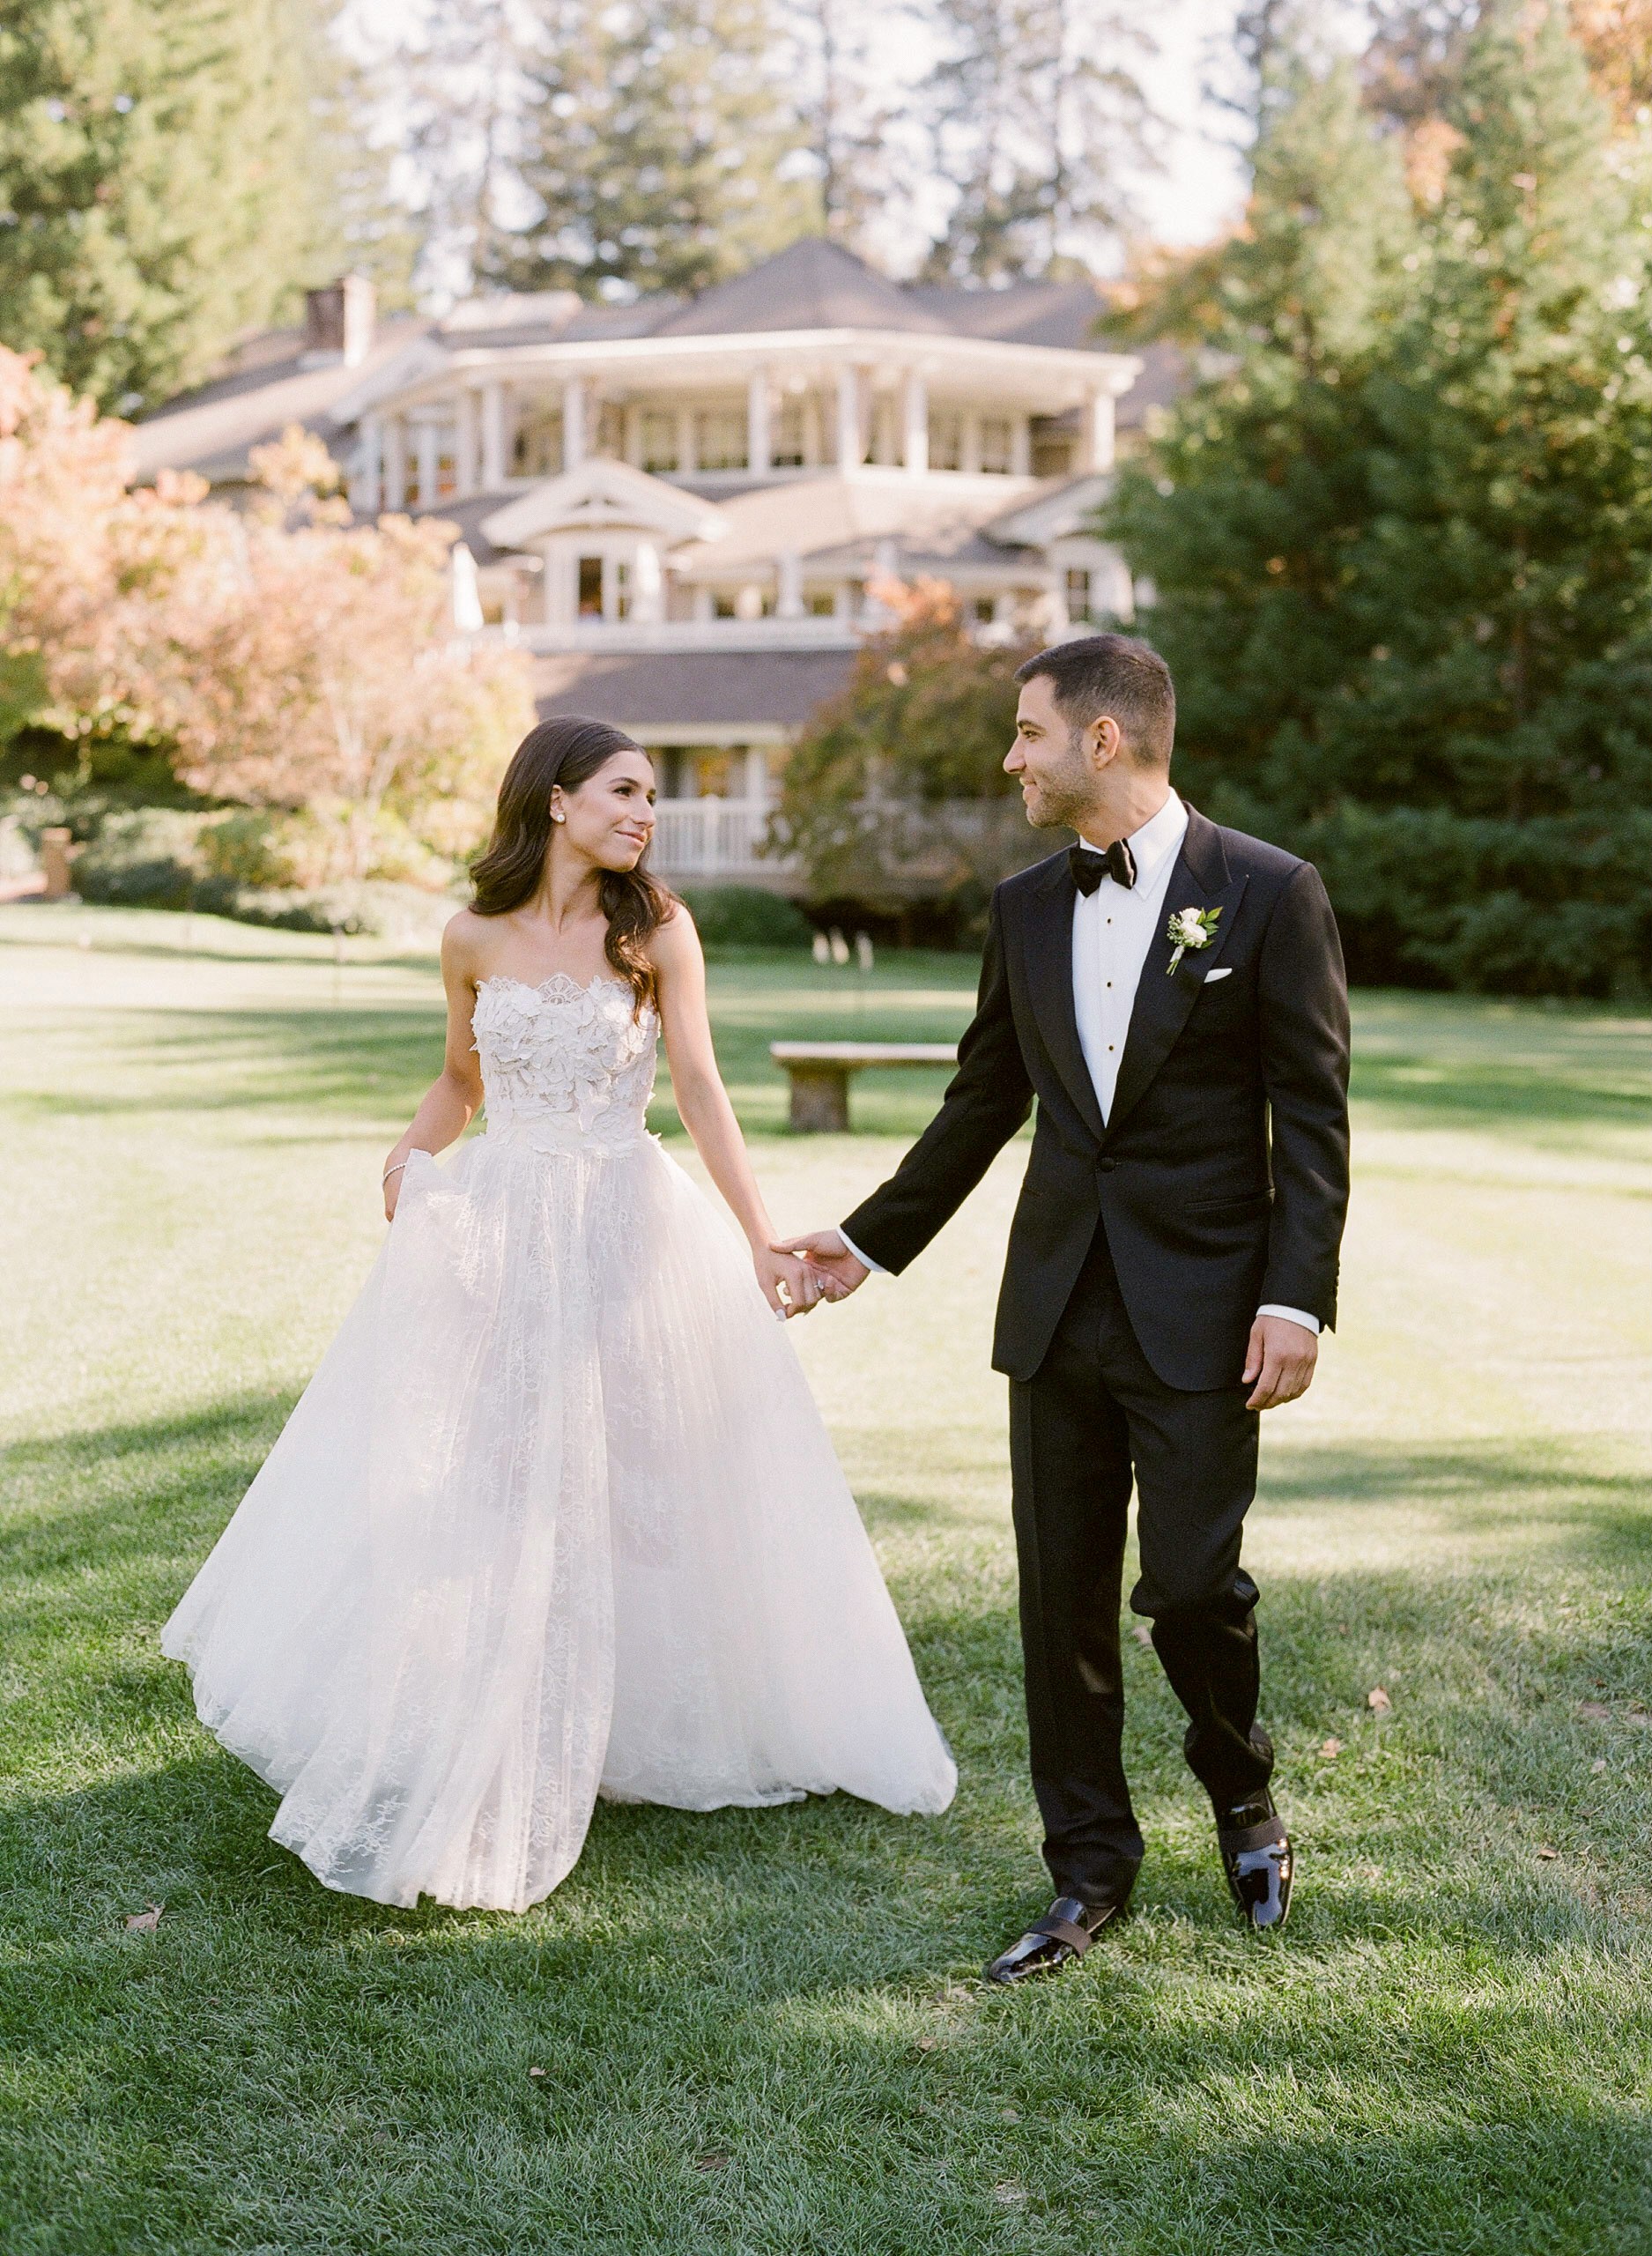 This Classic California Wedding Embraced the Natural Beauty of Napa Valley